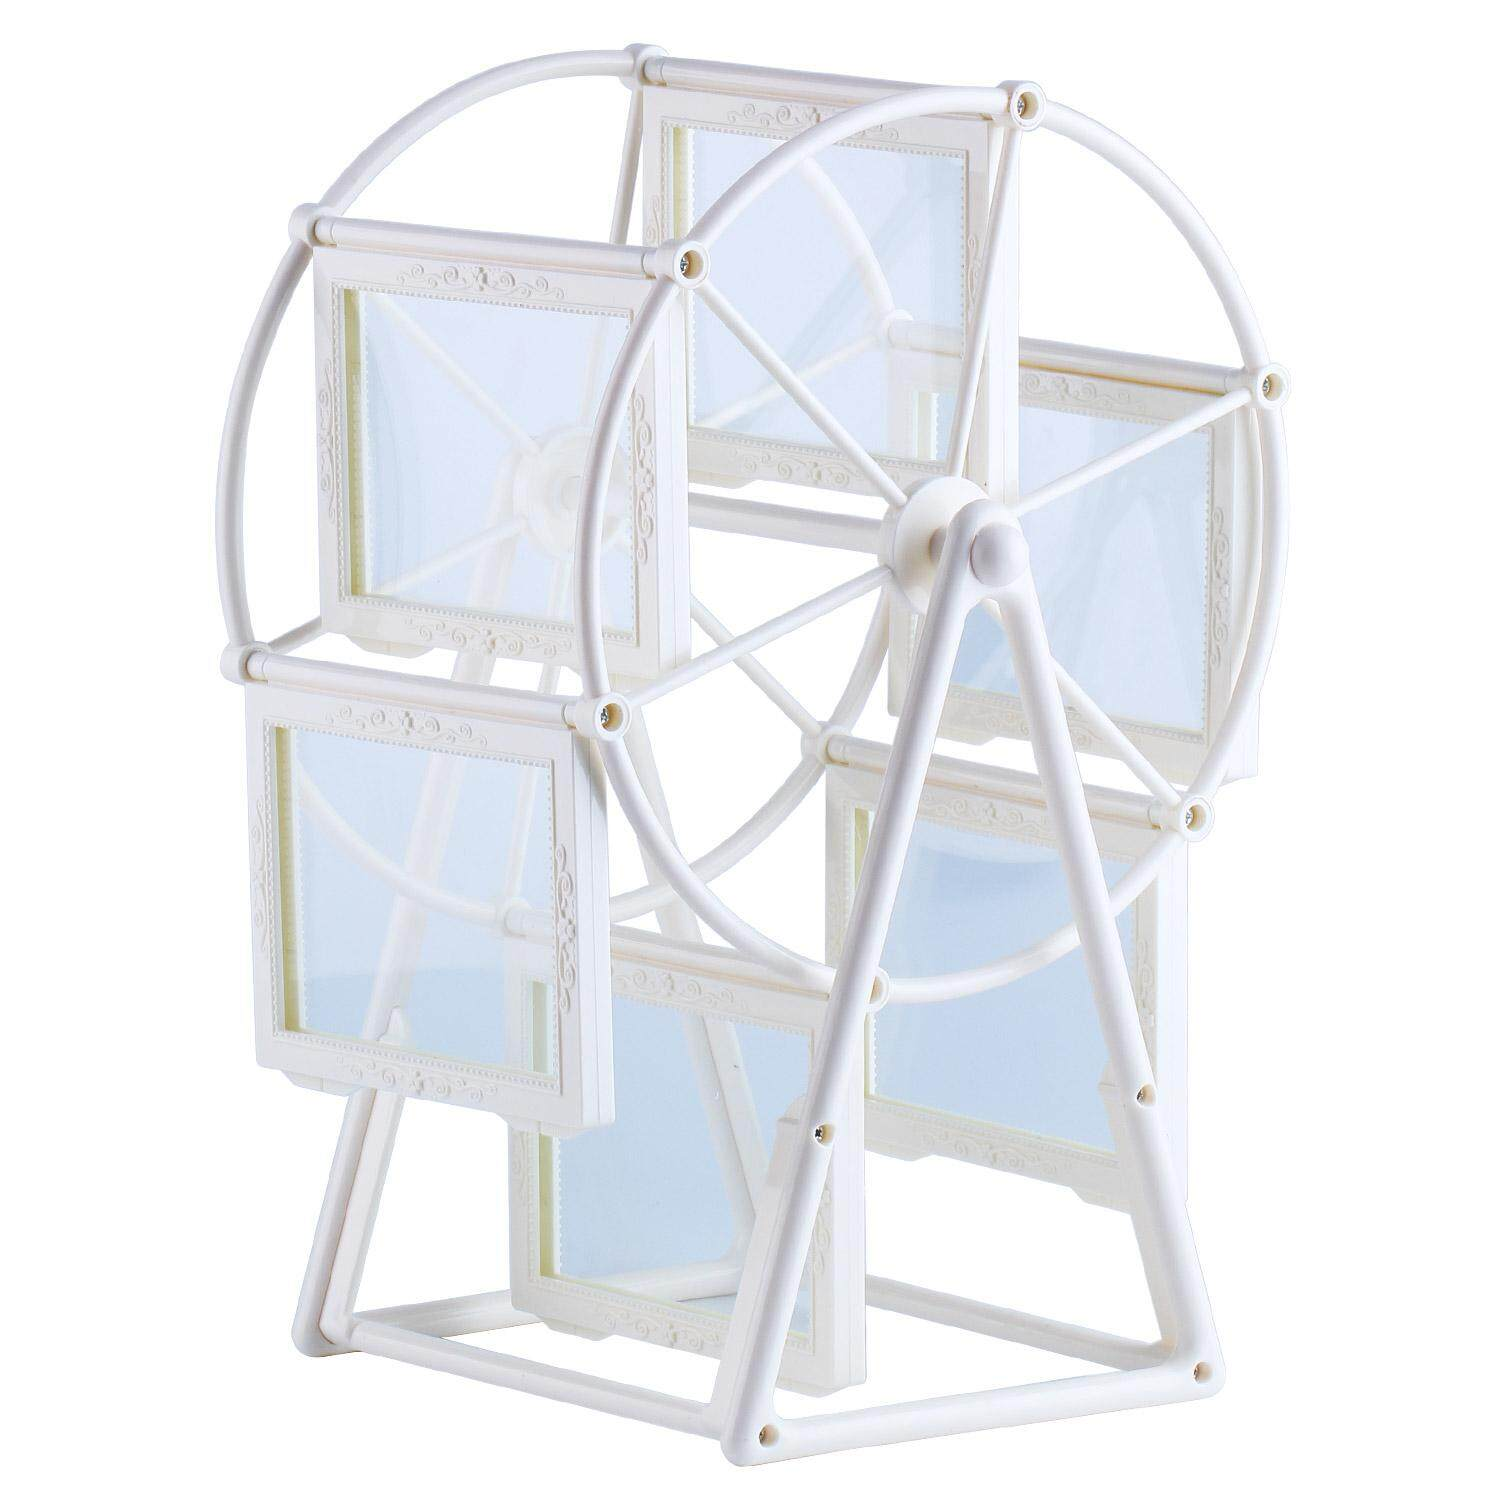 MagnificentStore Creative Rotating Ferris Wheel Home Profiles Photo Picture Frame 3.5x5 (White) - intl